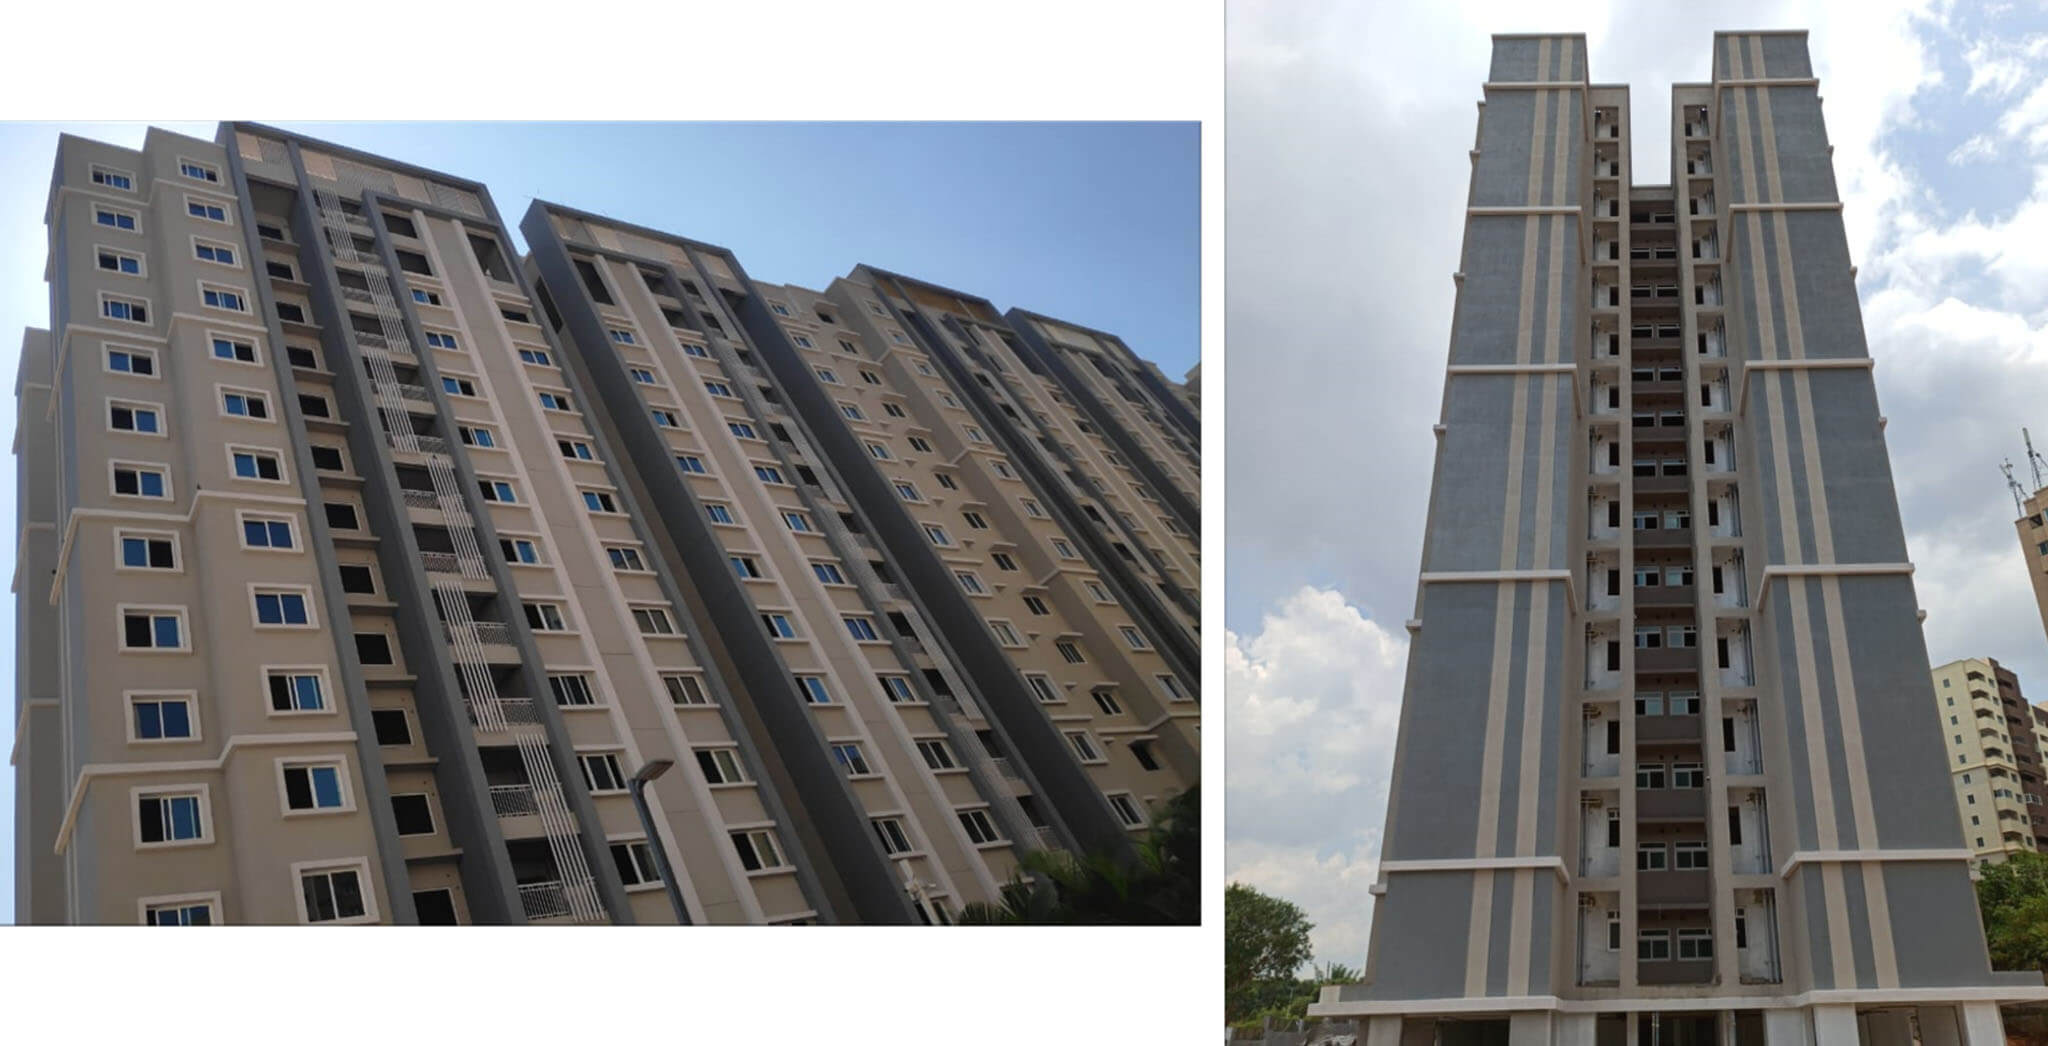 Apr 2021 - Towers E, F & G: Structure completed; External plastering 100% completed, external painting 100% completed & internal finishes in progress